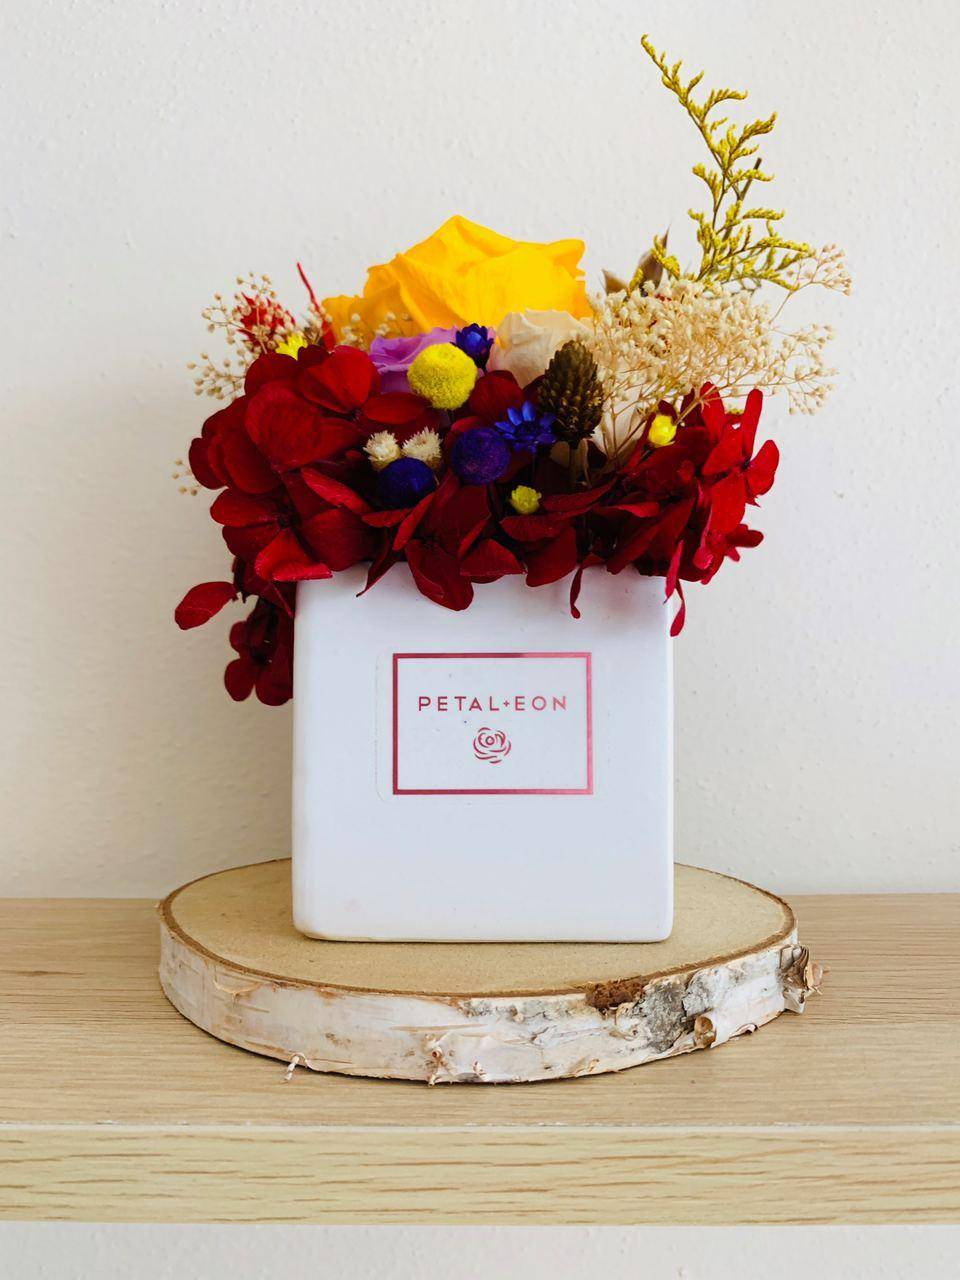 Standard-size floral kit - fall colors (yellow, red, purple) - white Katherine vase